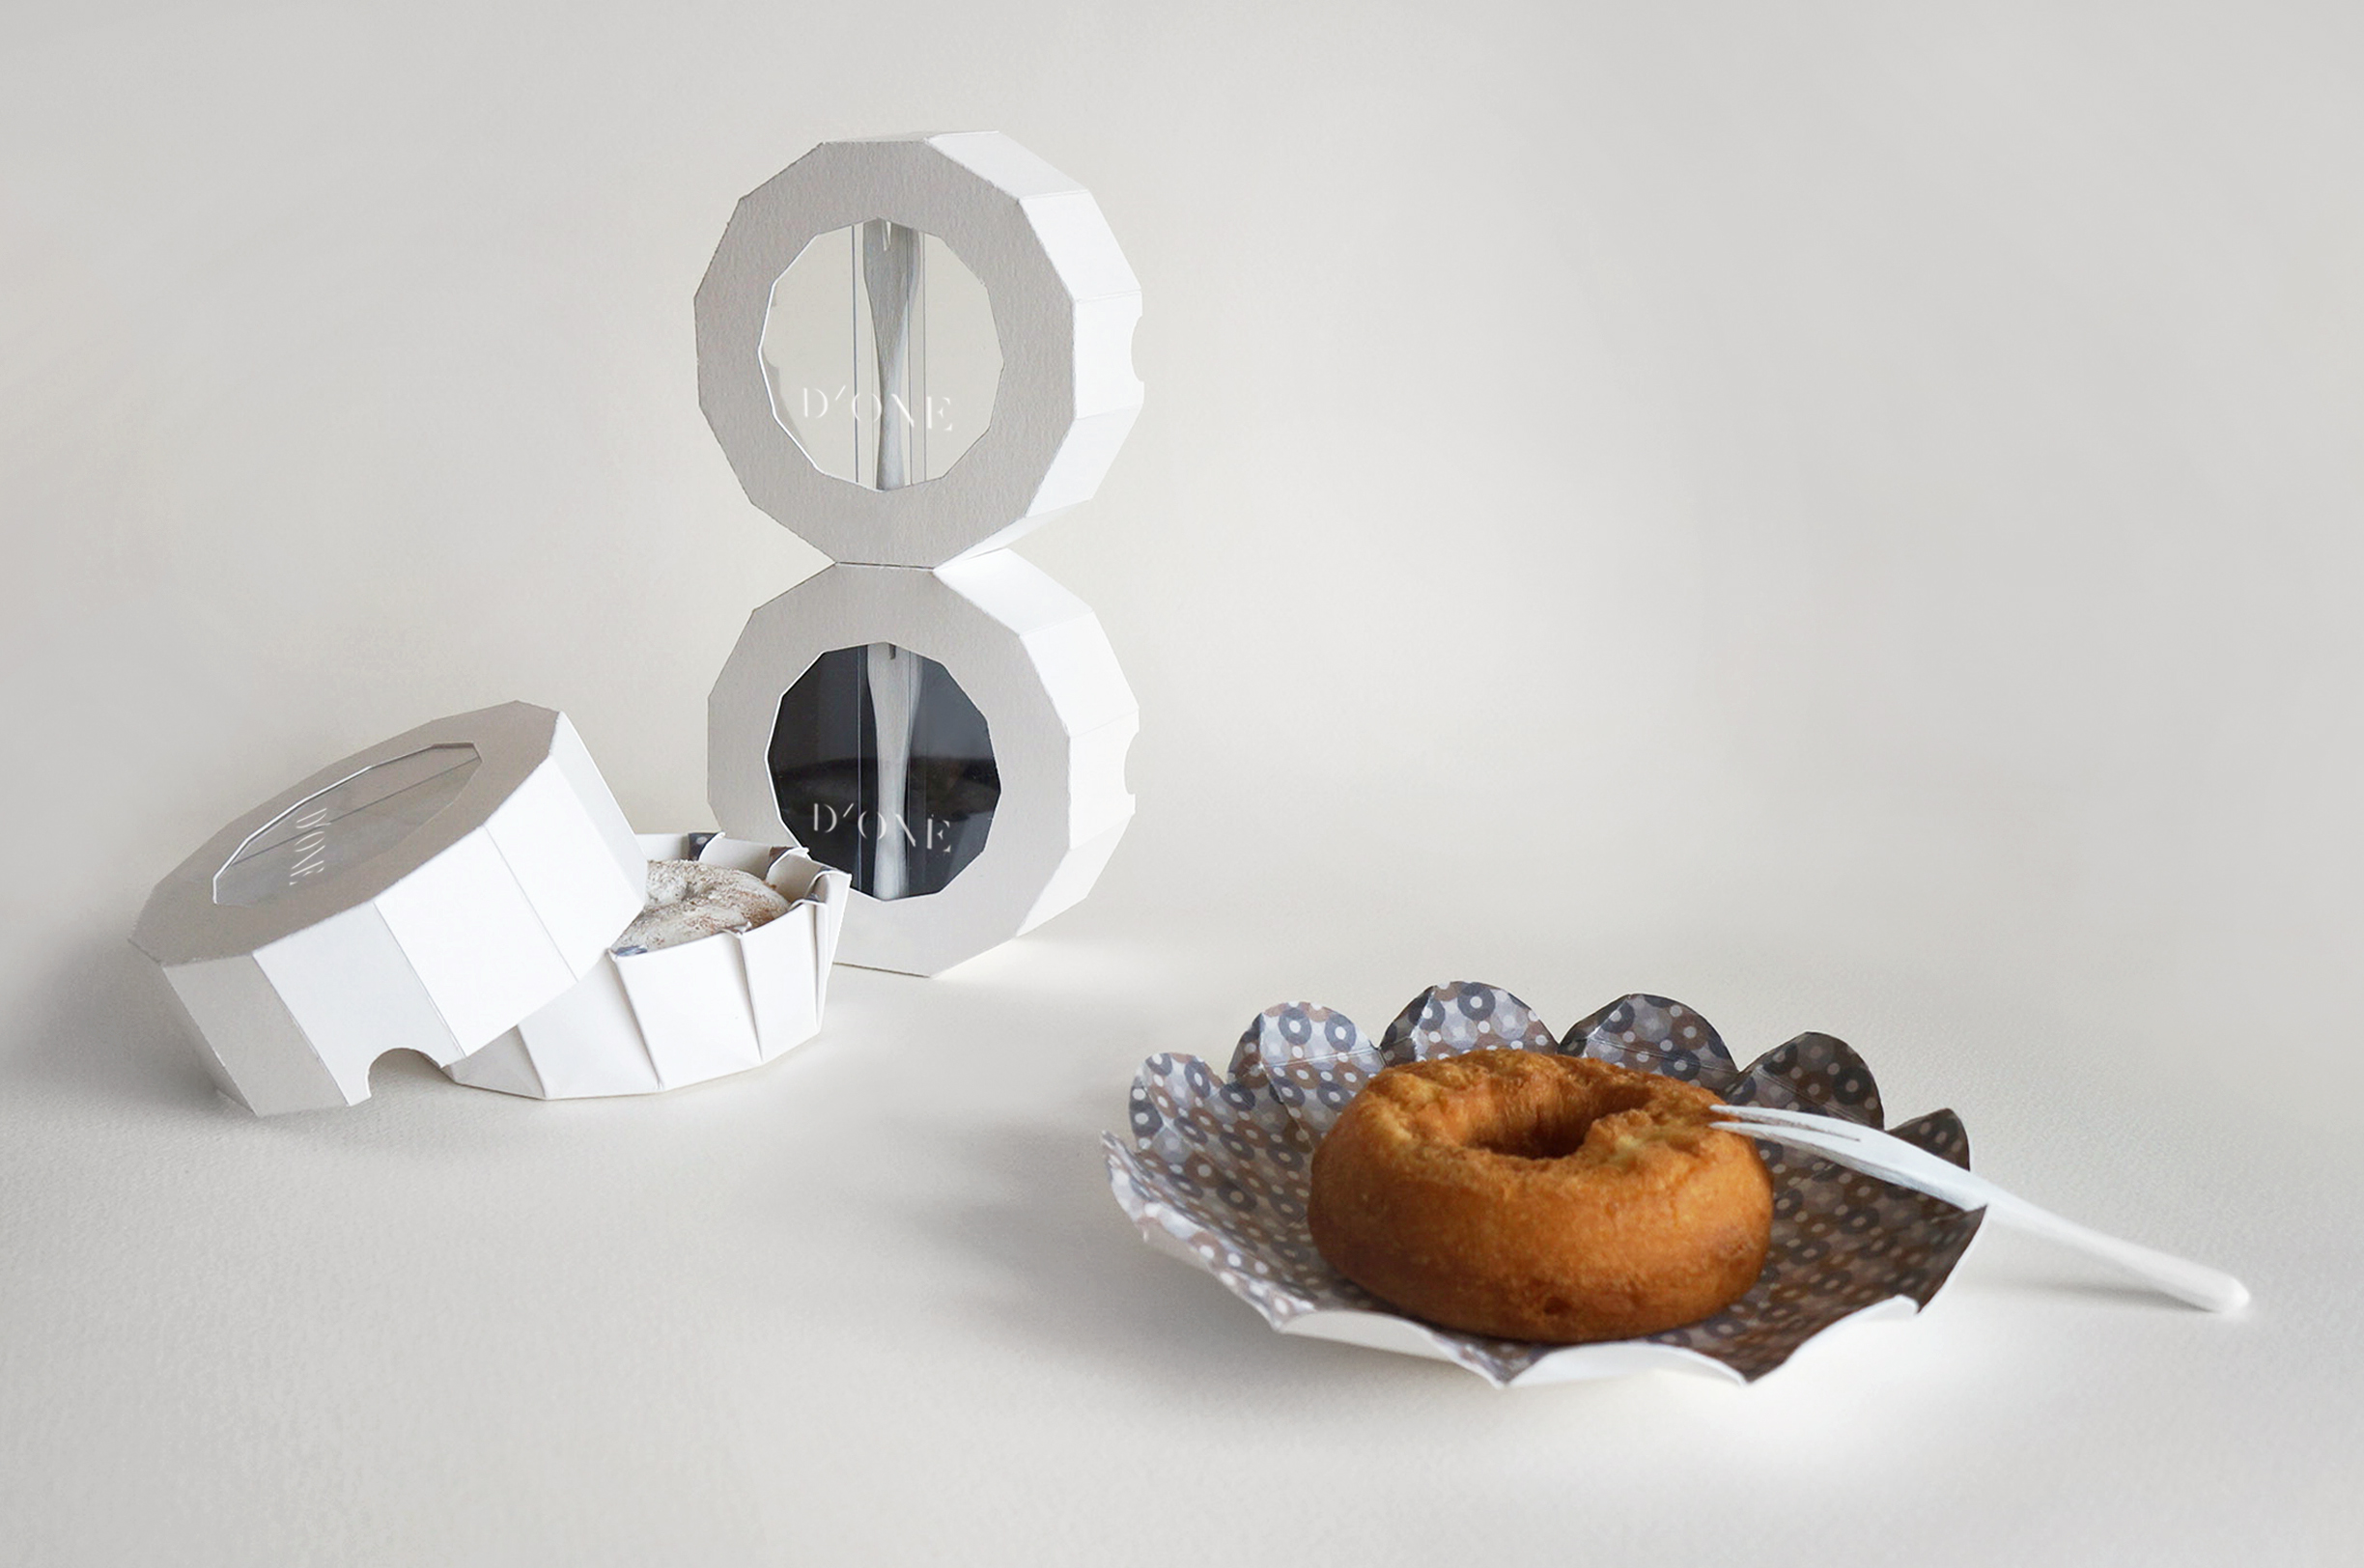 D'ONE Donut Packaging